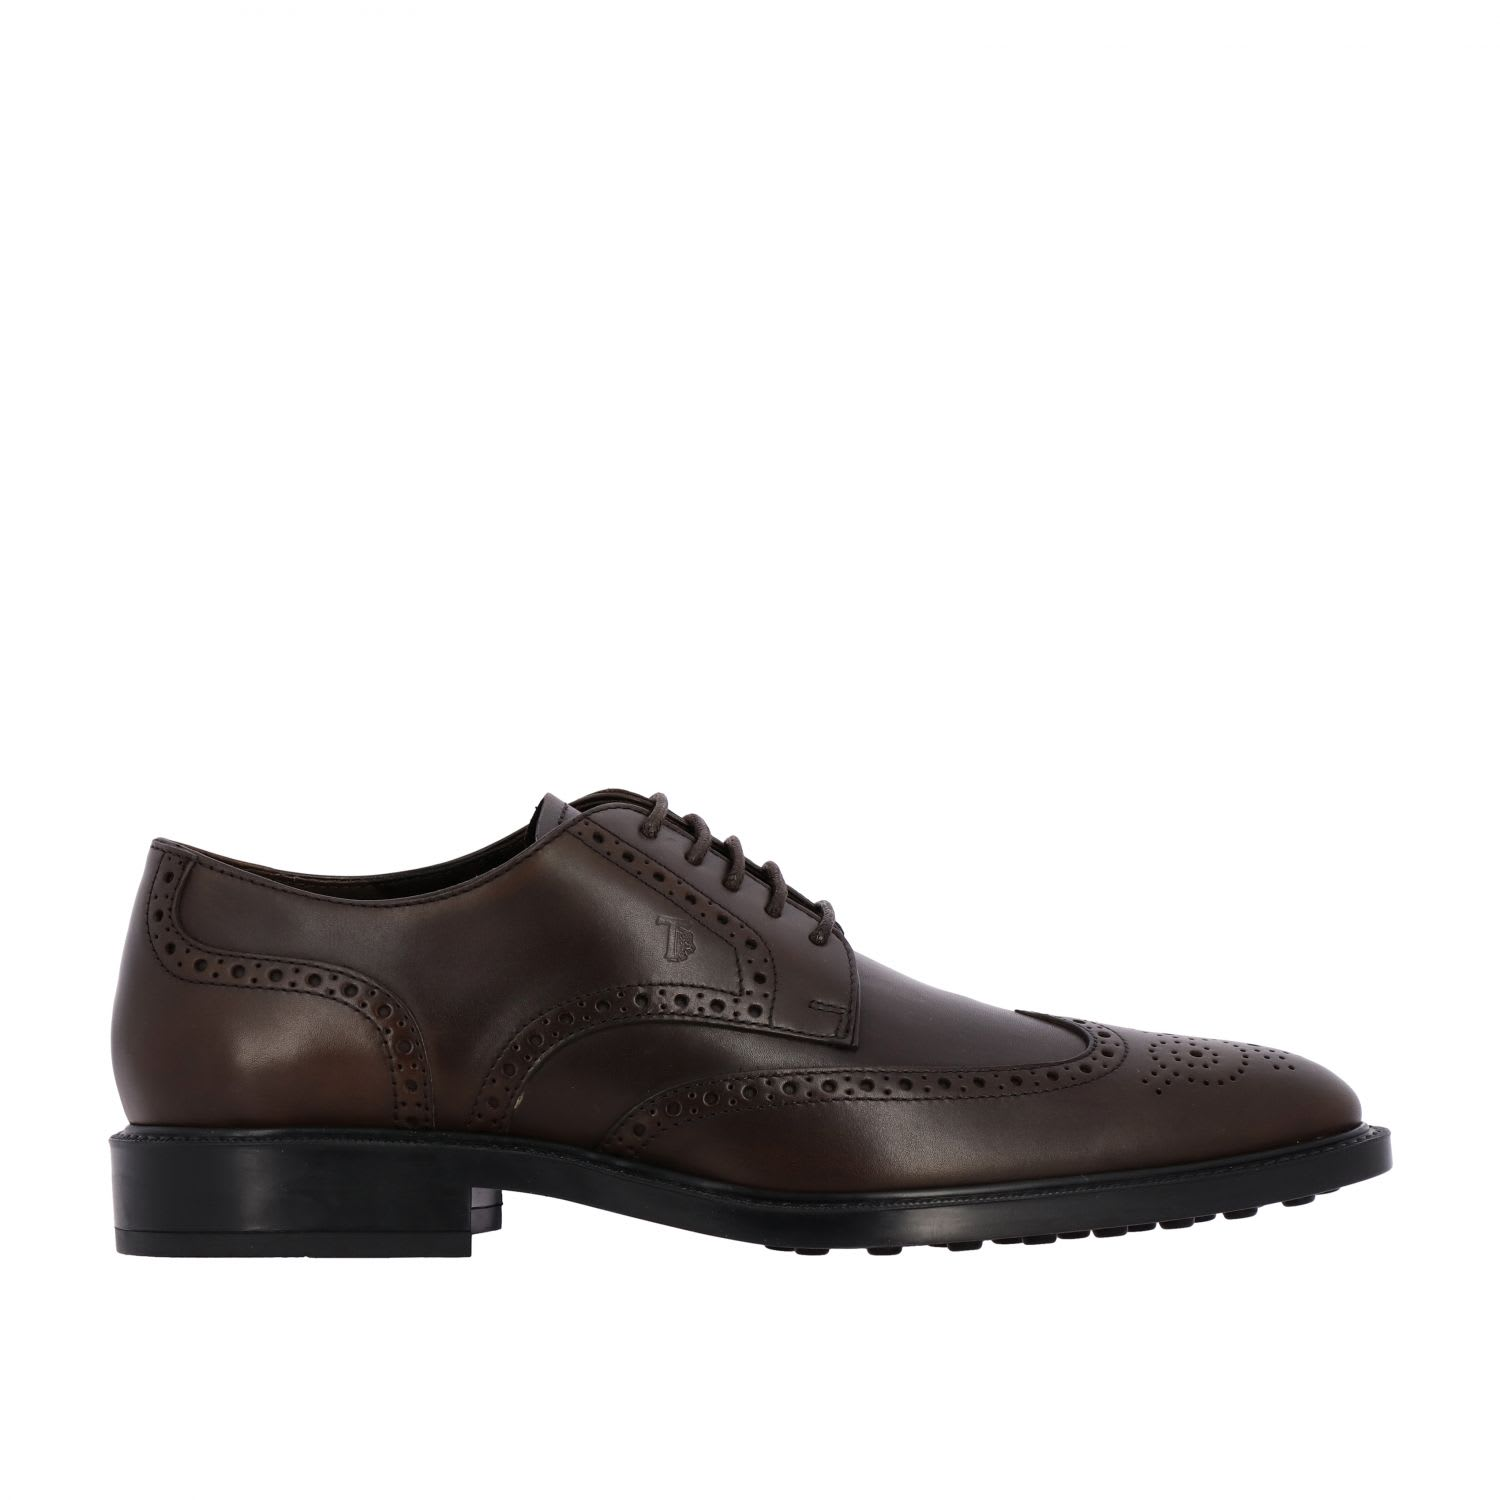 Brogue Shoes Tods Derby In Leather With Dovetail Brogue MotifComposition: 100% Calfskin